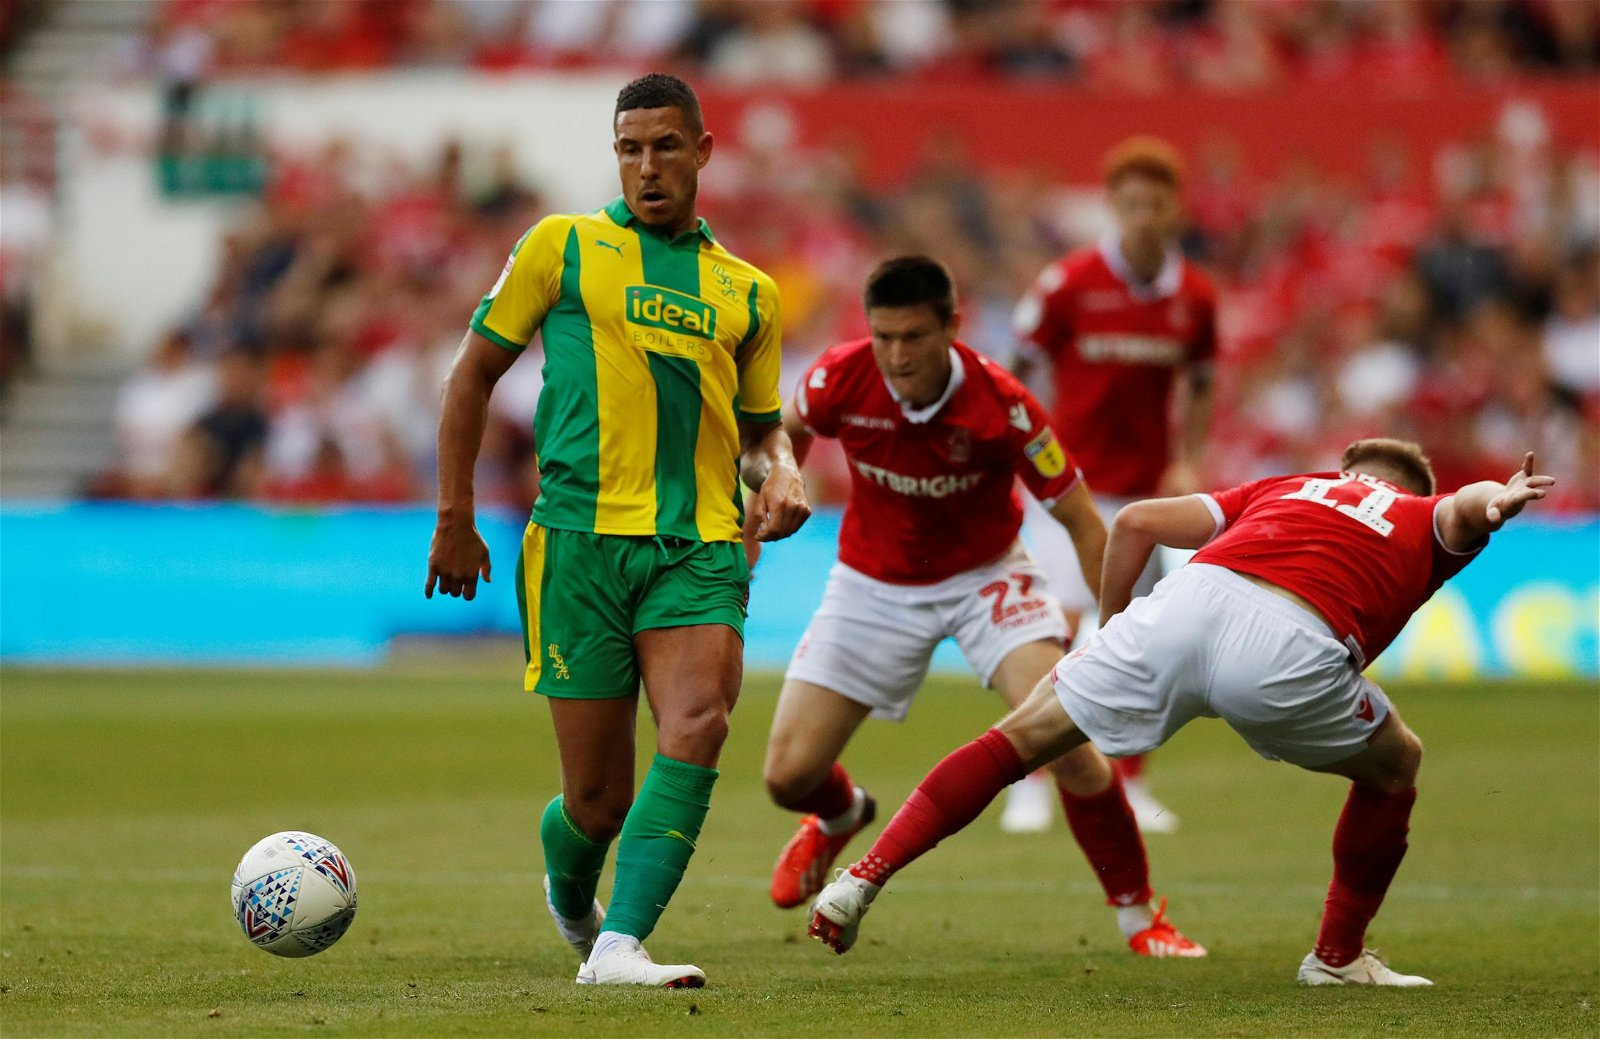 Jake Livermore for West Brom